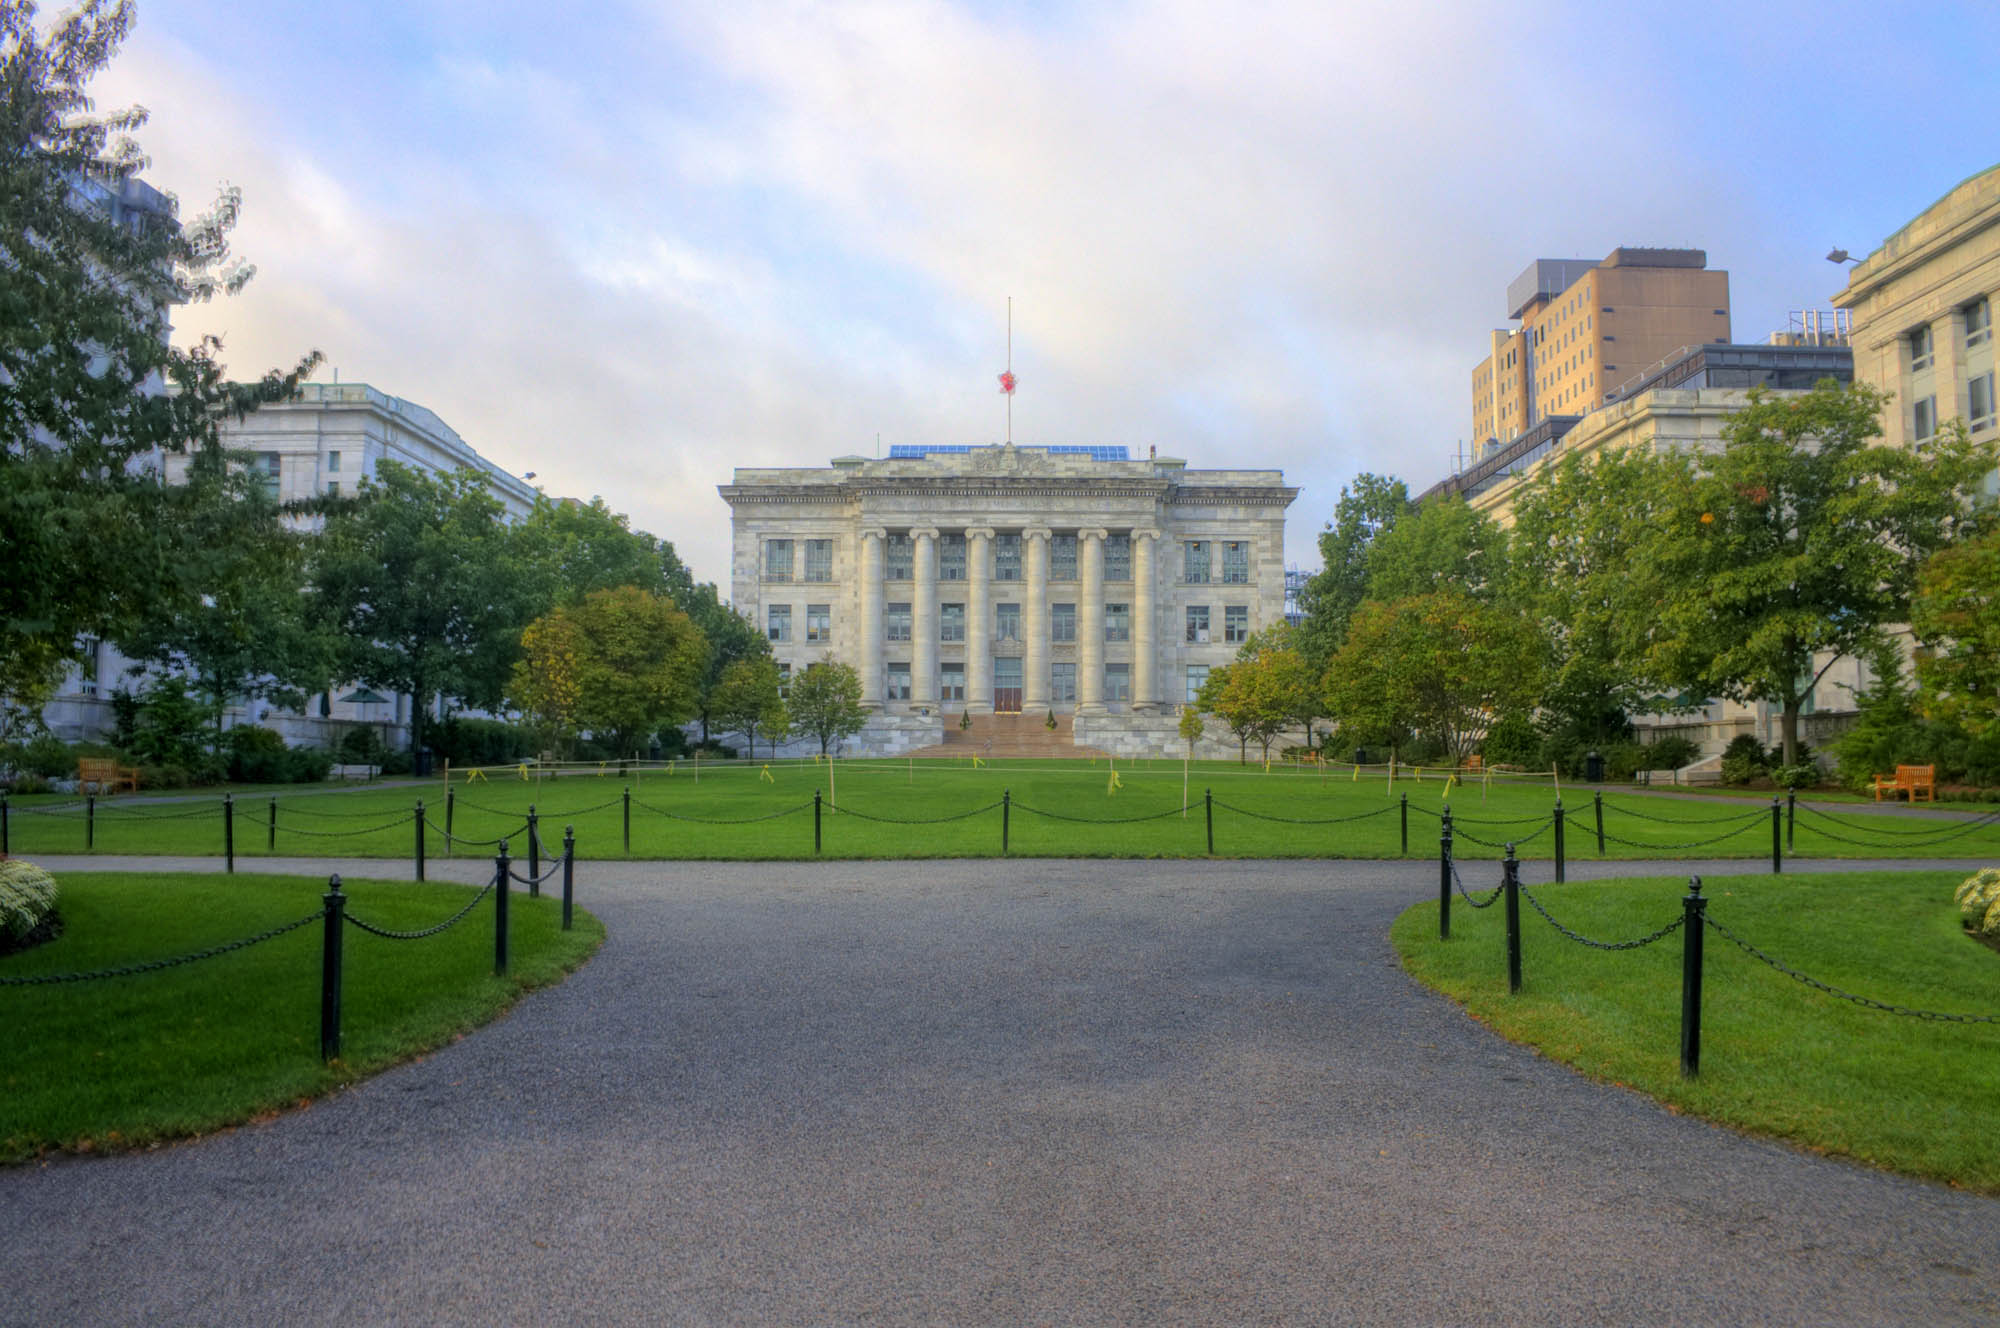 harvard medical school coursework The graduate school of arts and sciences offers the master of arts (am), master of science (sm), master of engineering (me), and the doctor of philosophy (phd) in 57 divisions, departments, and committees, including 17 interfaculty programs.